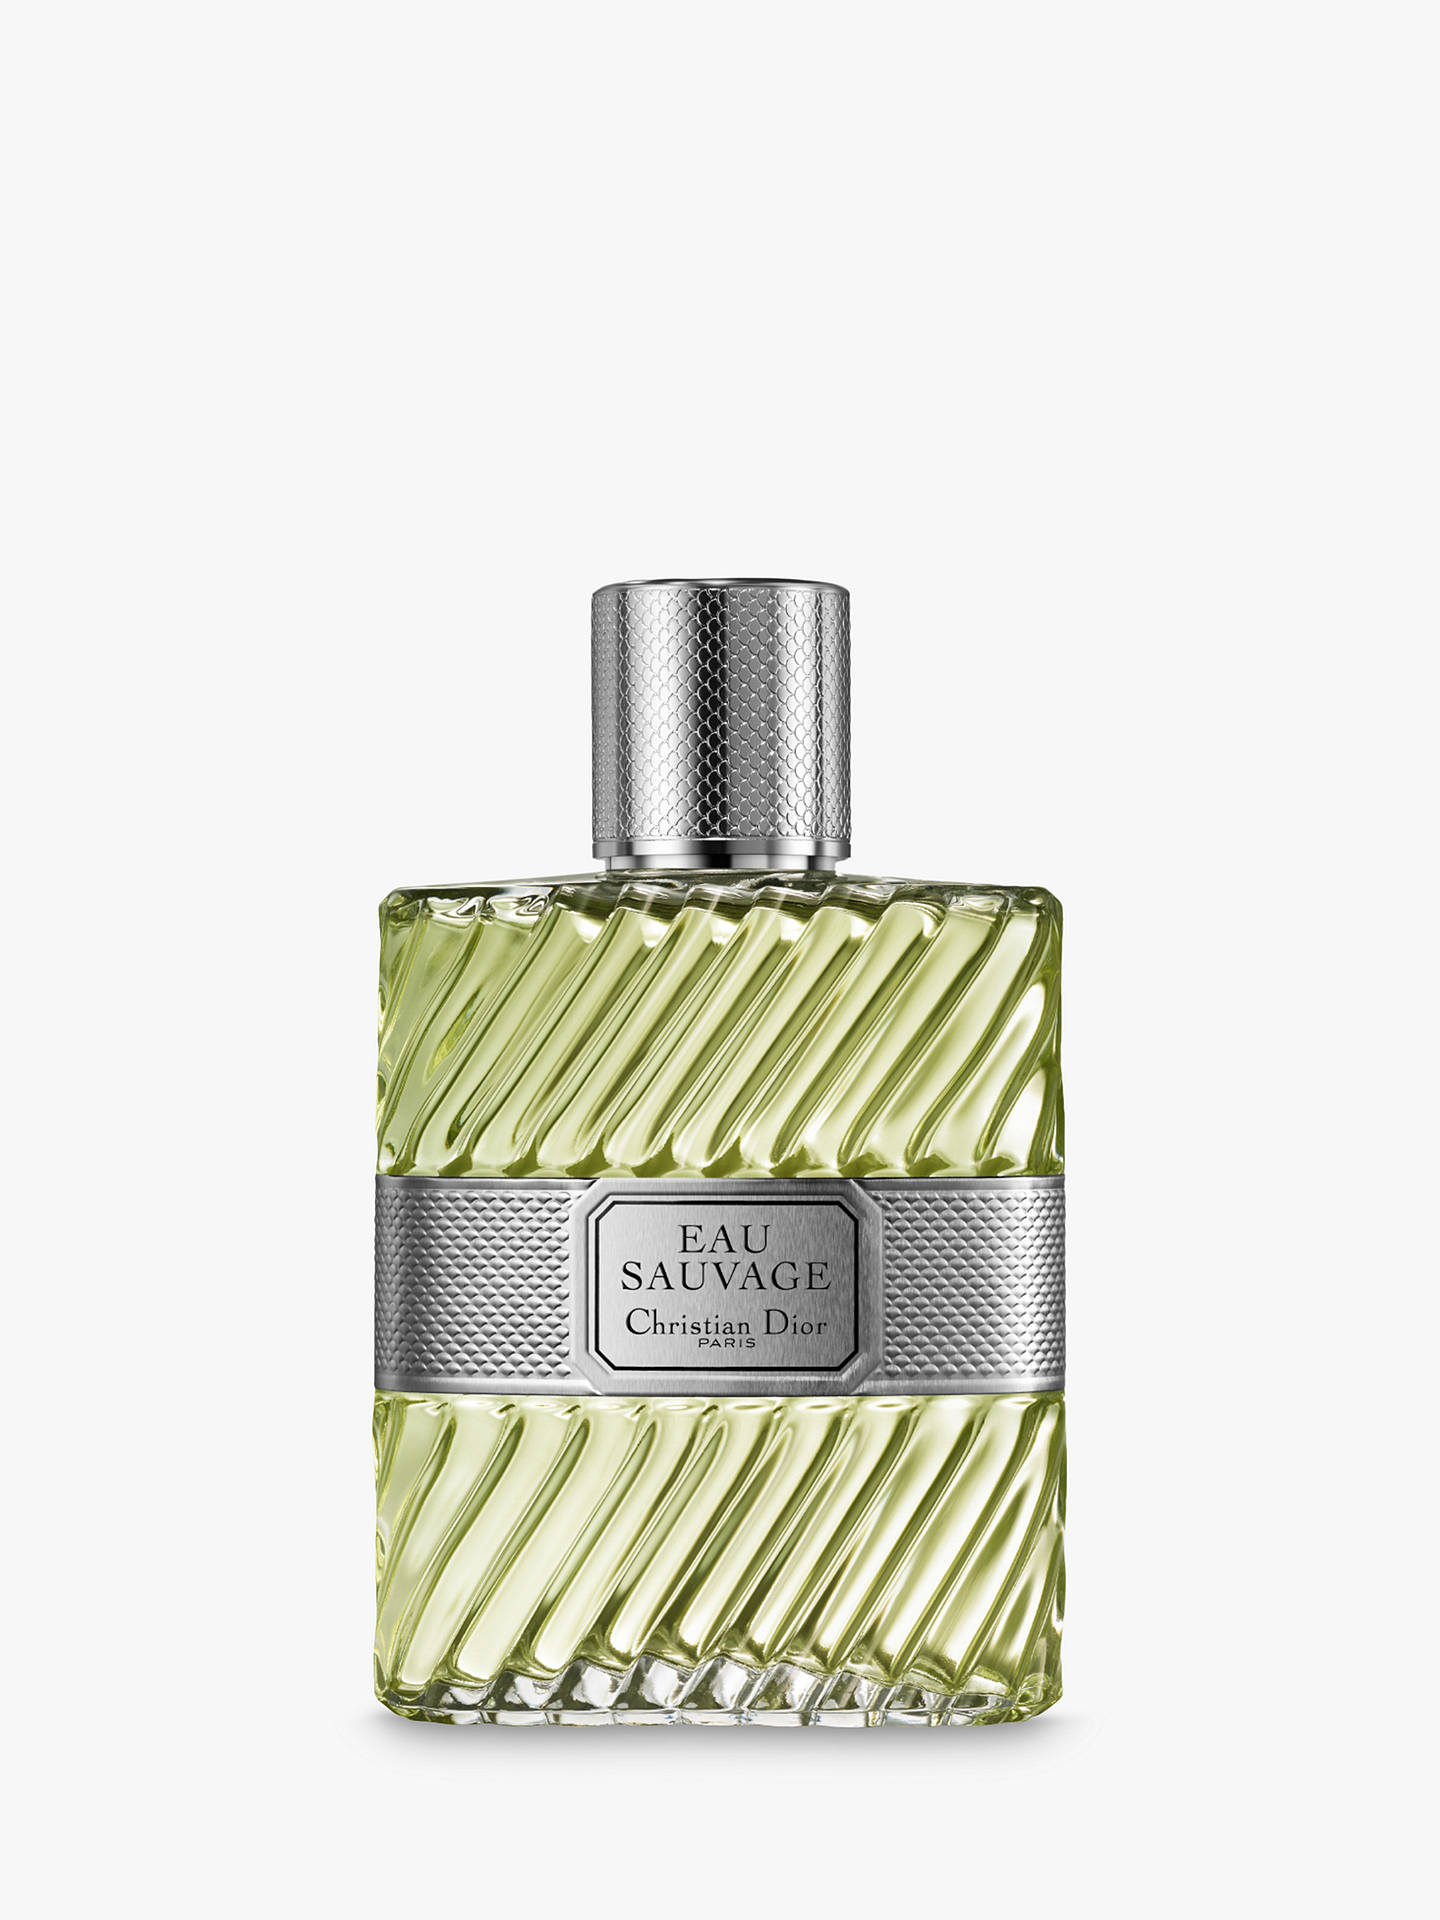 7eb1a862 Dior Eau Sauvage Eau De Toilette Spray at John Lewis & Partners